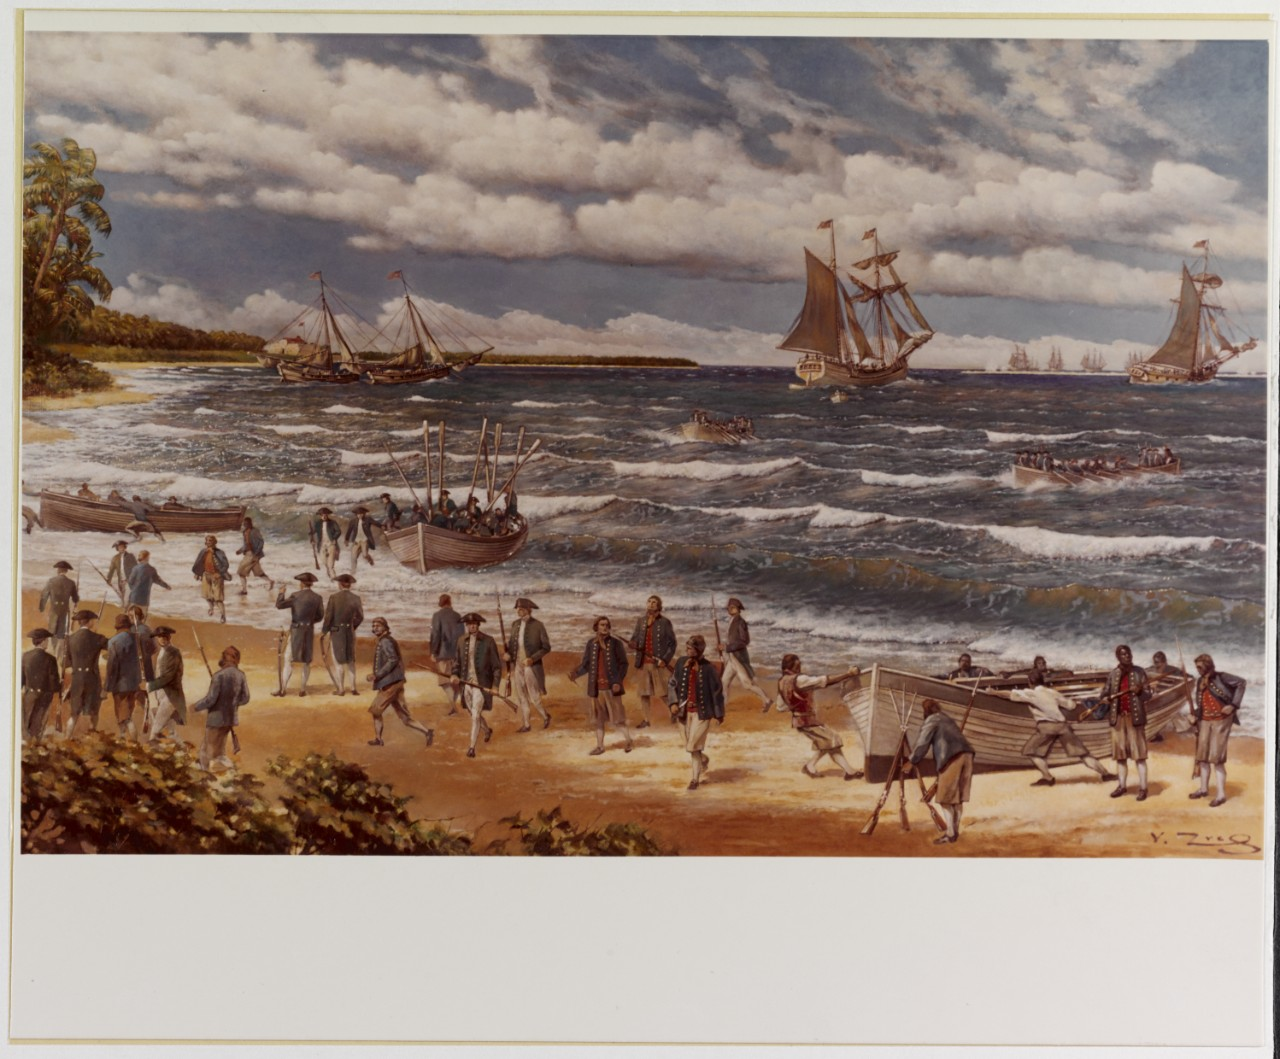 Image of first overseas Expedition of the Continental Navy at the shore